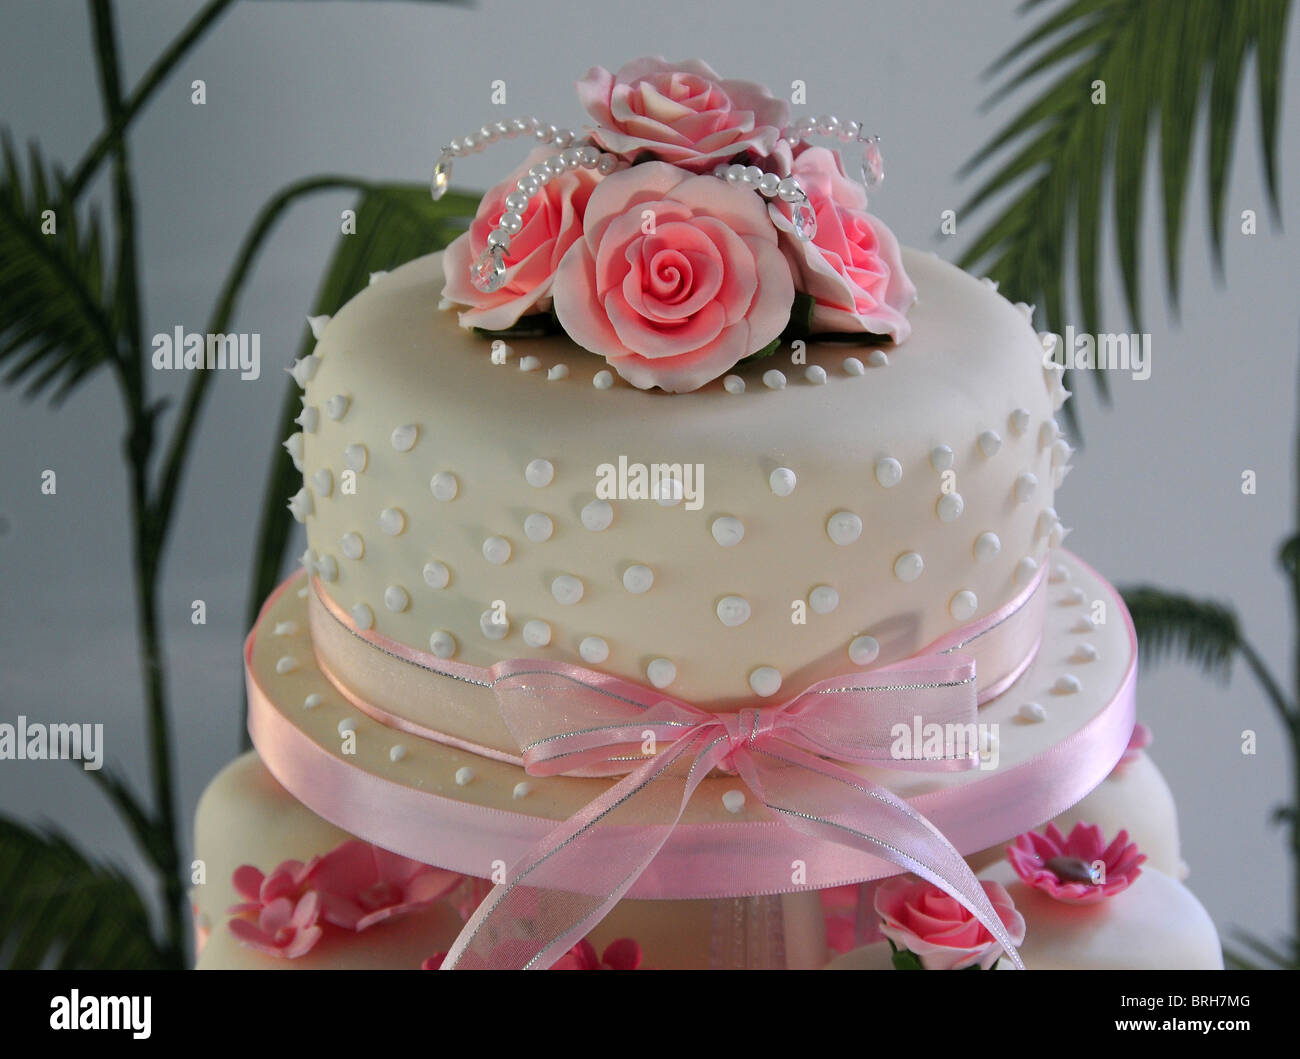 The top tier of a pink and white wedding cake made up with cup cakes     The top tier of a pink and white wedding cake made up with cup cakes and  decorated with a pink ribbon and roses  Dorset  UK 2009